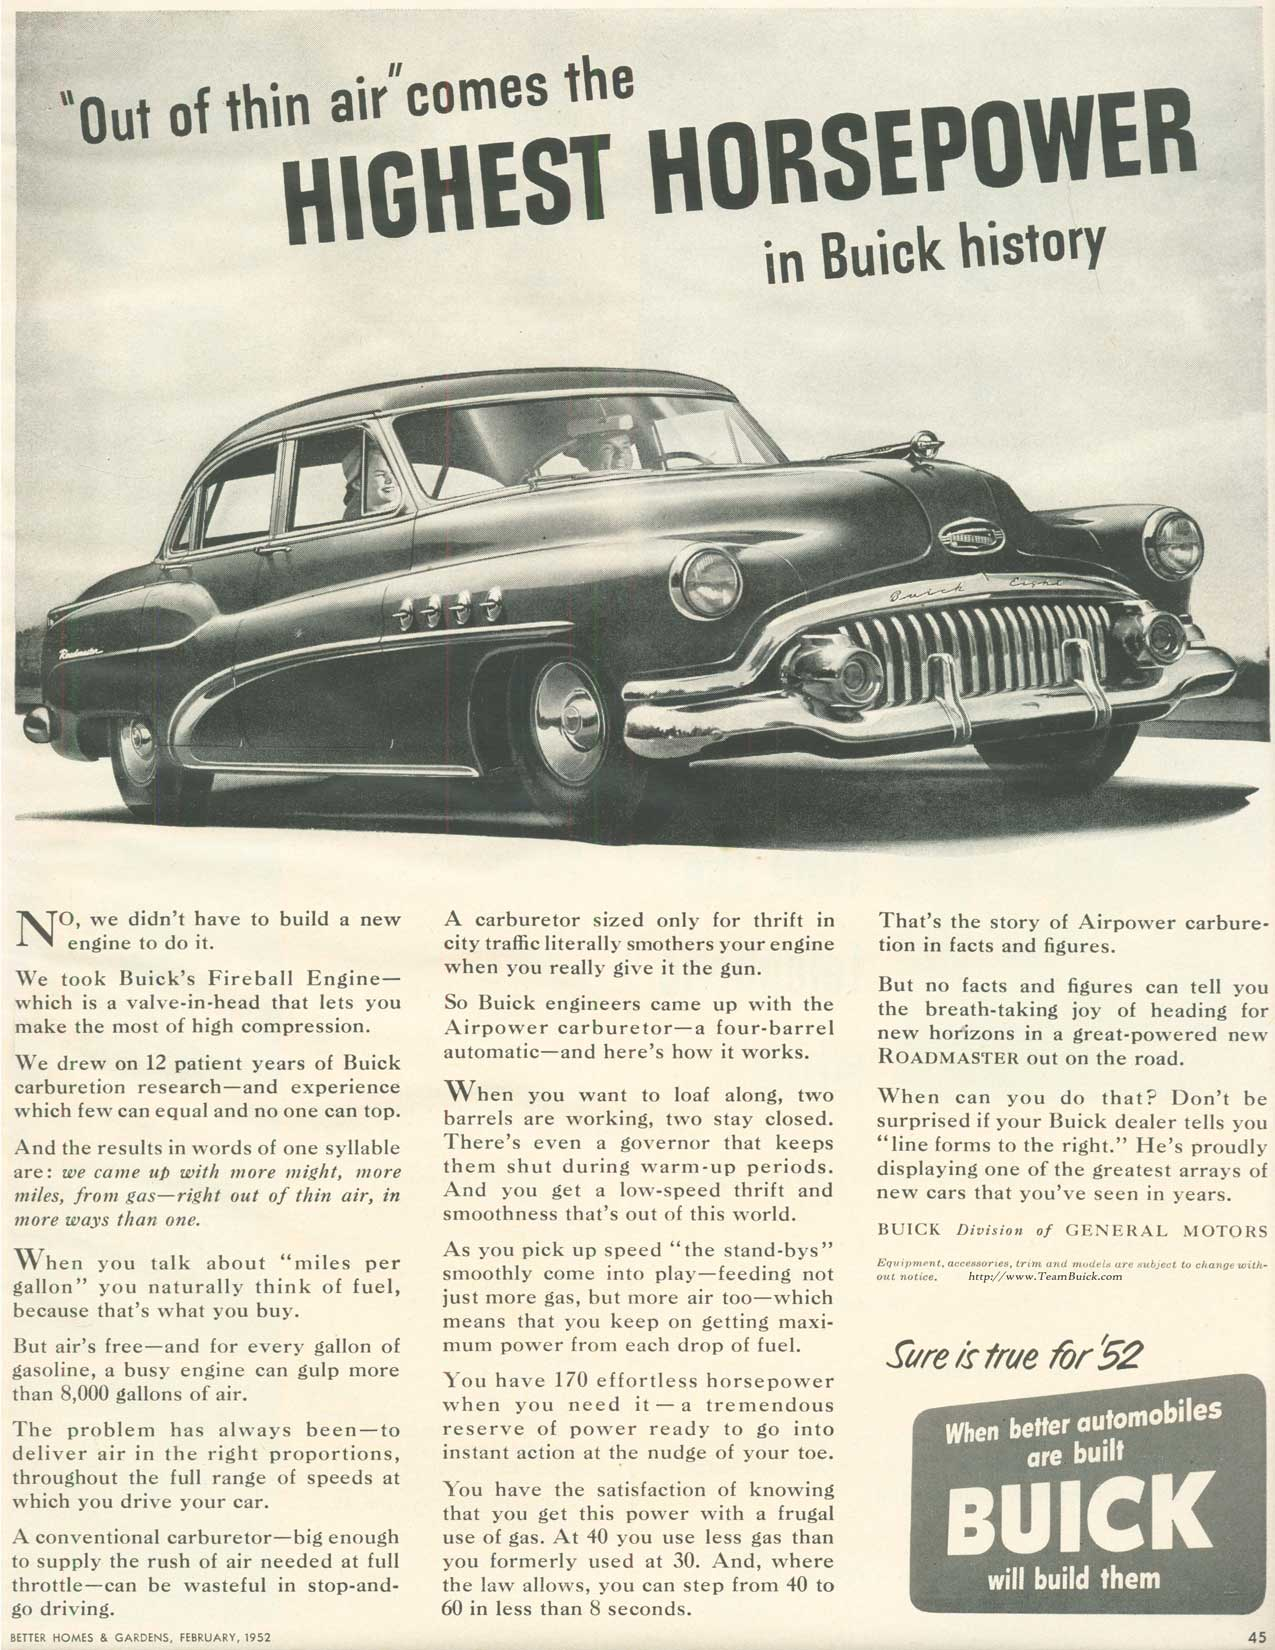 1952 Buick Roadmaster, Highest Horsepower